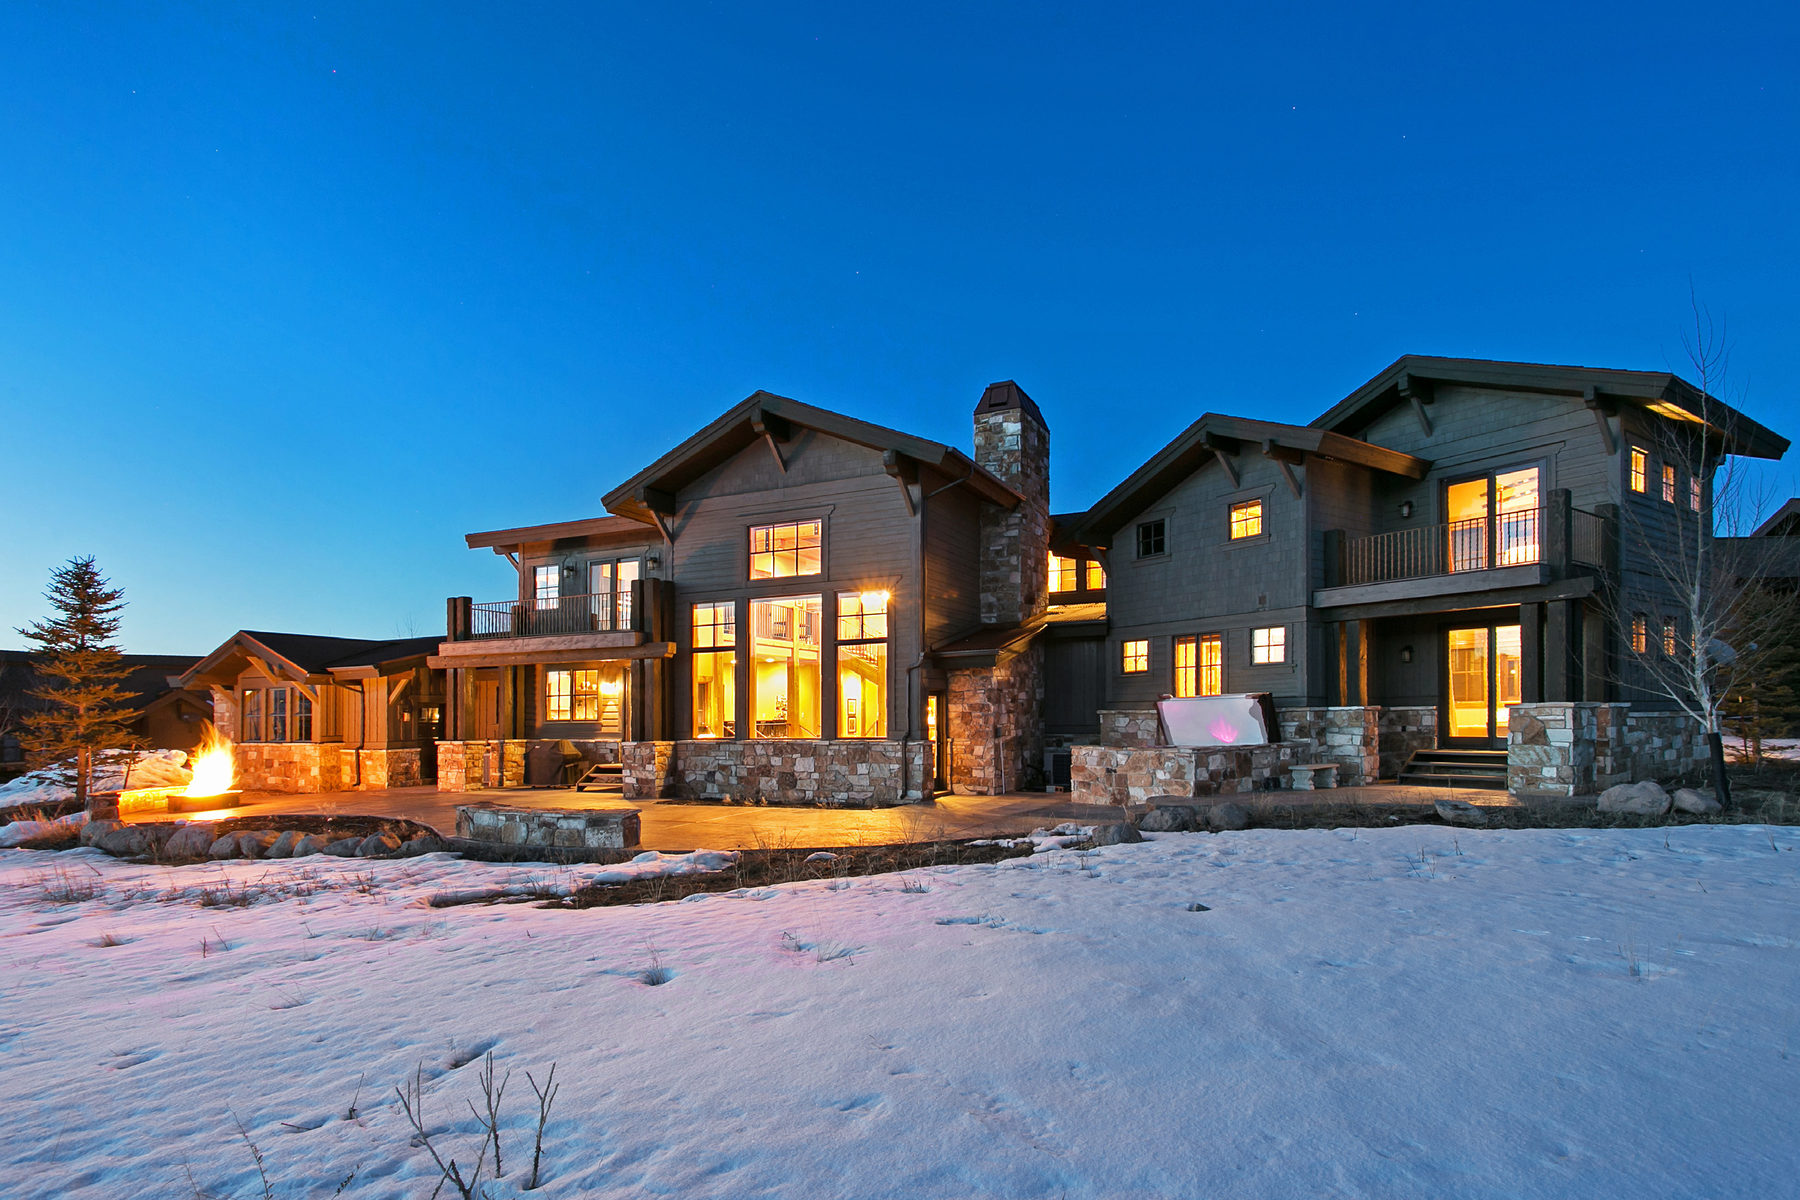 Maison unifamiliale pour l Vente à Panoramic Ski Views in Promontory 2382 Palomino Trl Park City, Utah, 84098 États-Unis